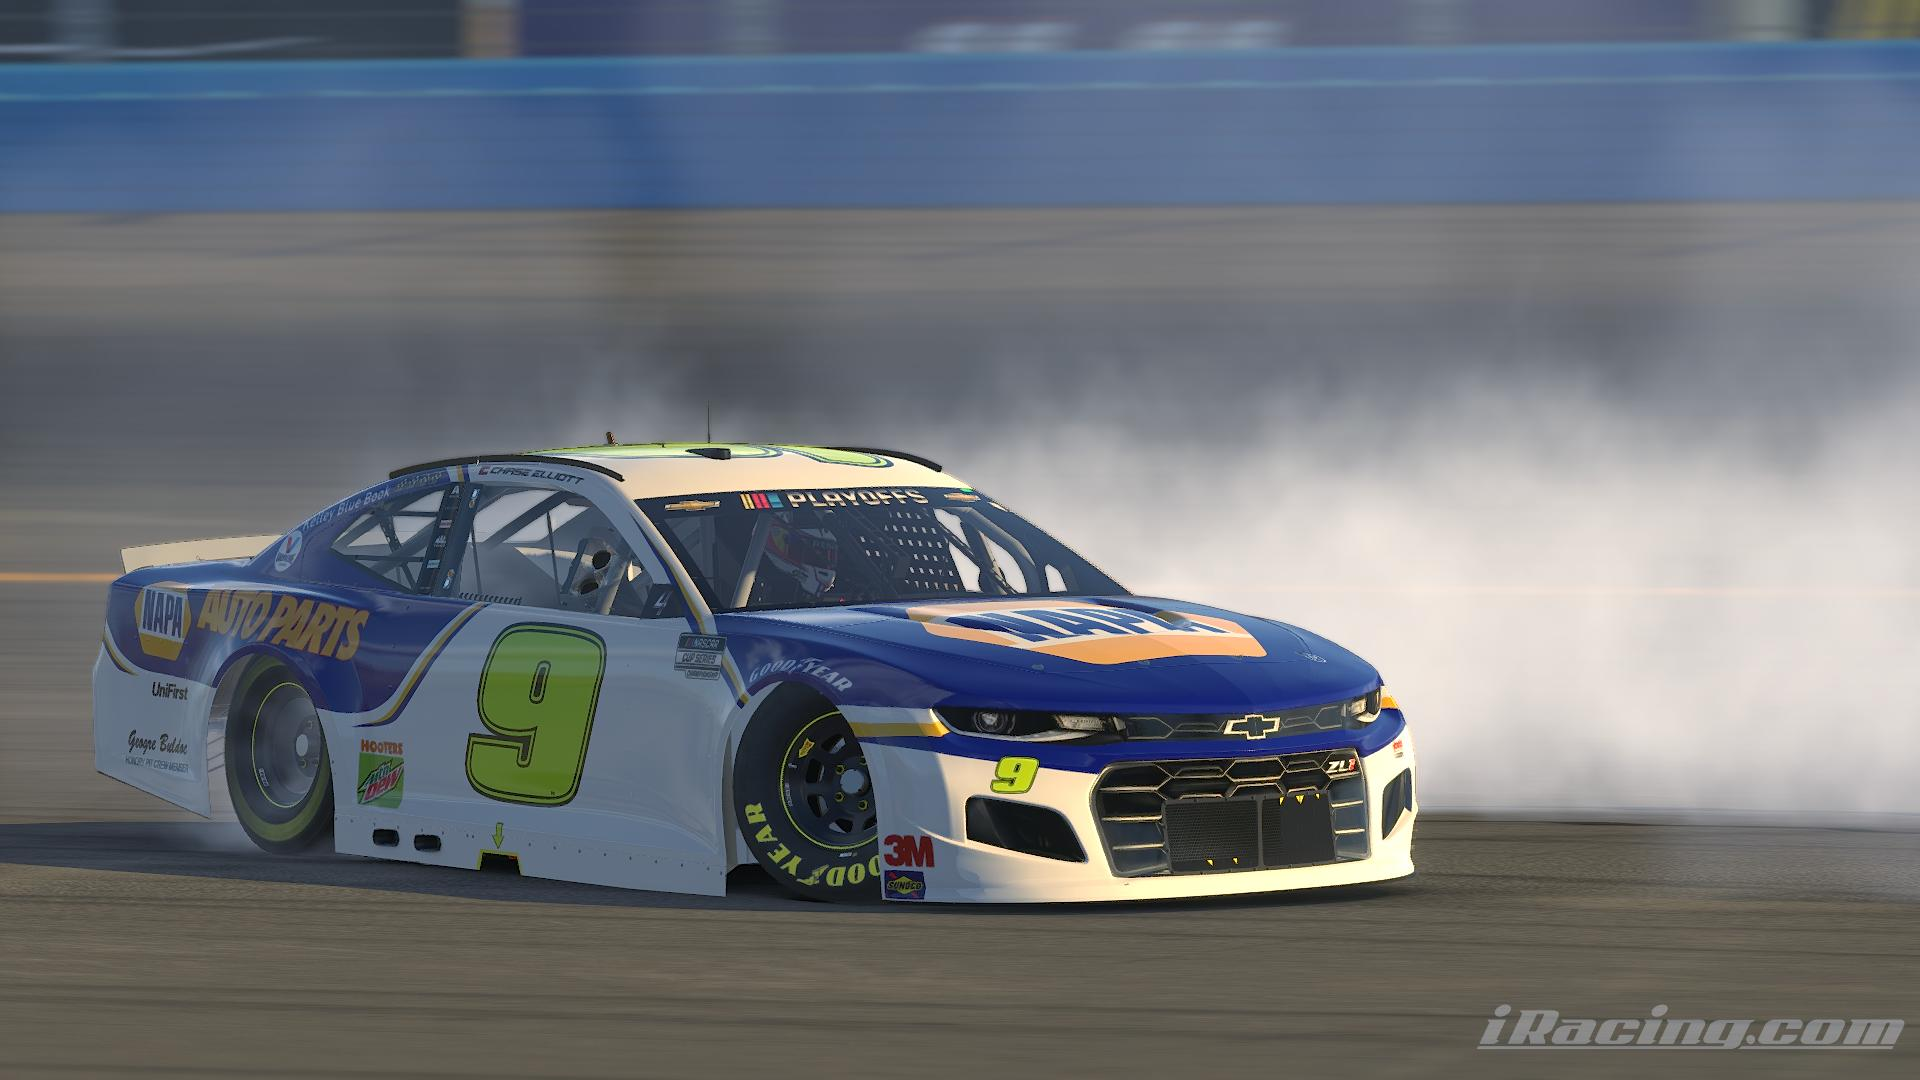 Preview of Chase Elliott Phoenix 2020 by Alexander L Russell